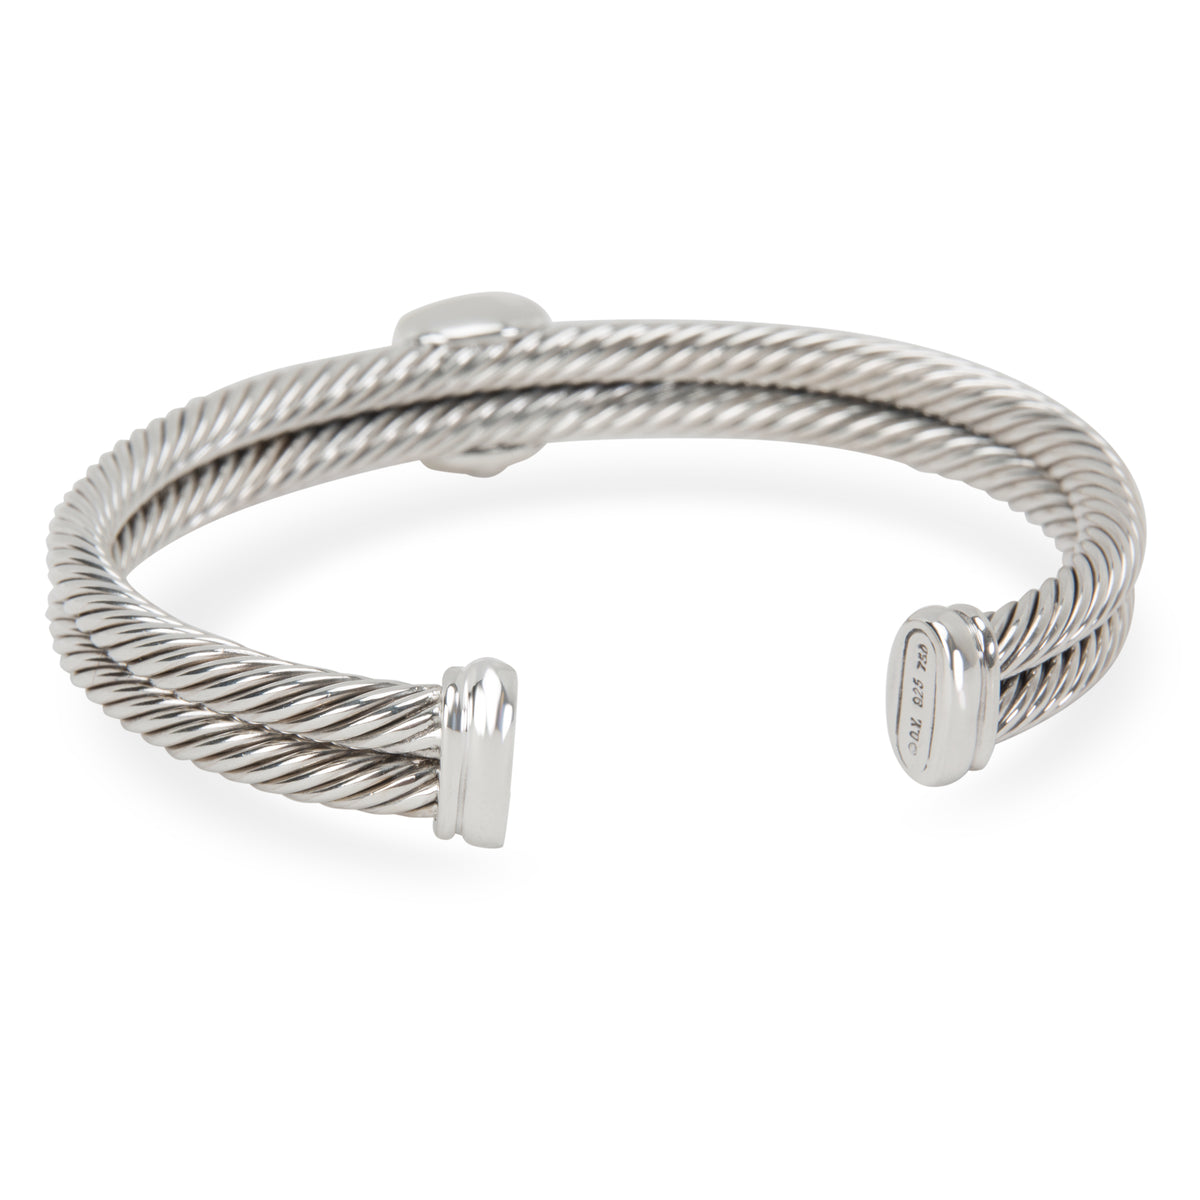 David Yurman Blue Topaz Cable Bangle in Sterling Silver & 18K Yellow Gold